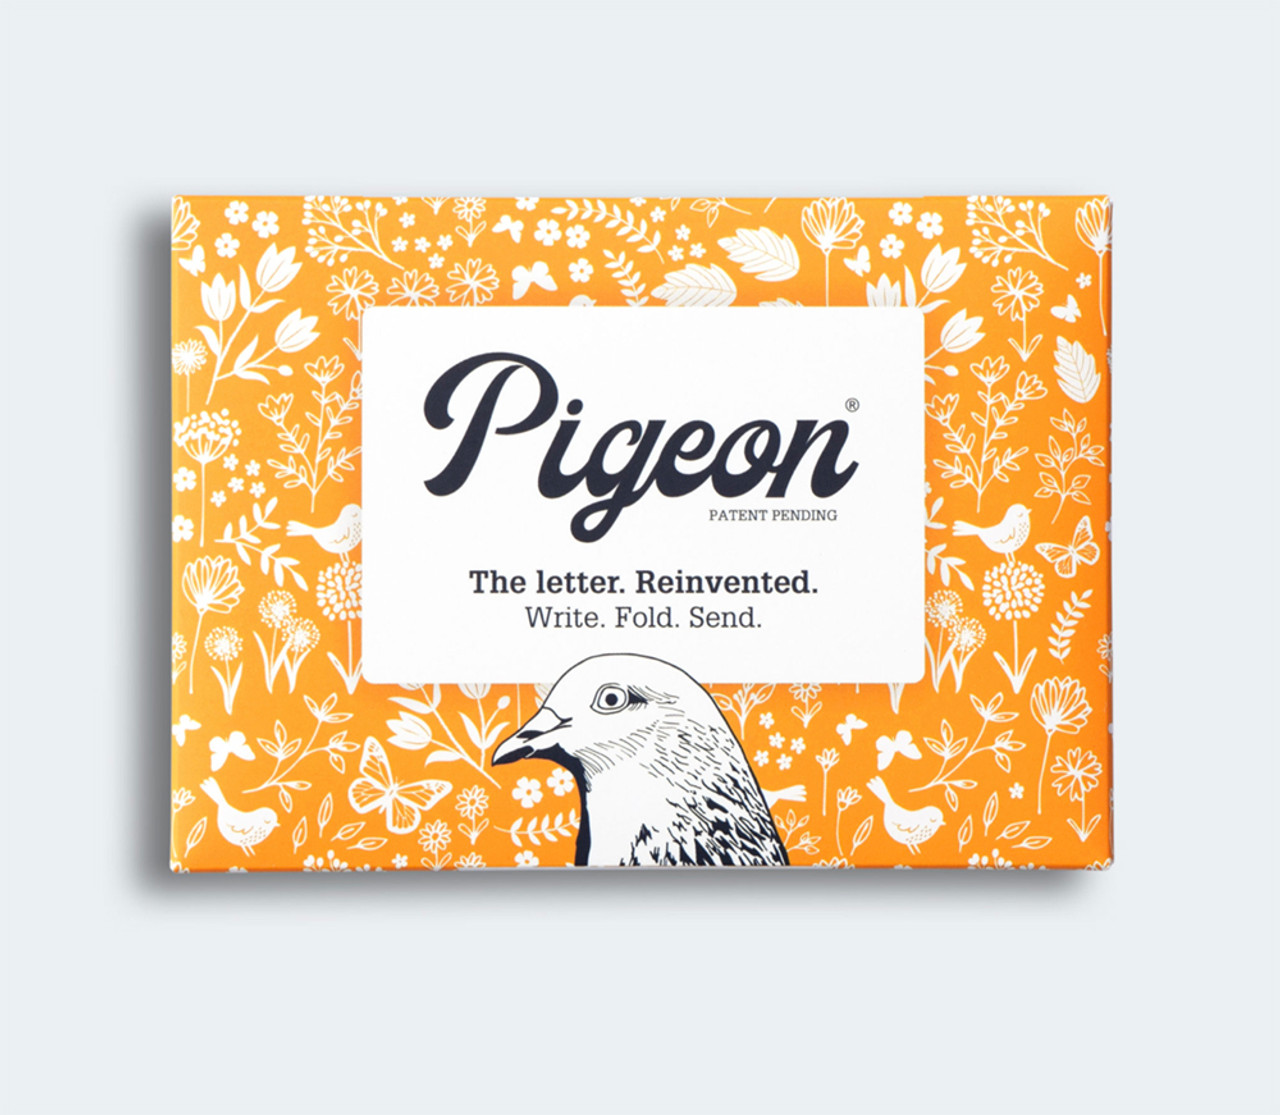 Pigeon Posted - Summer Meadow pack